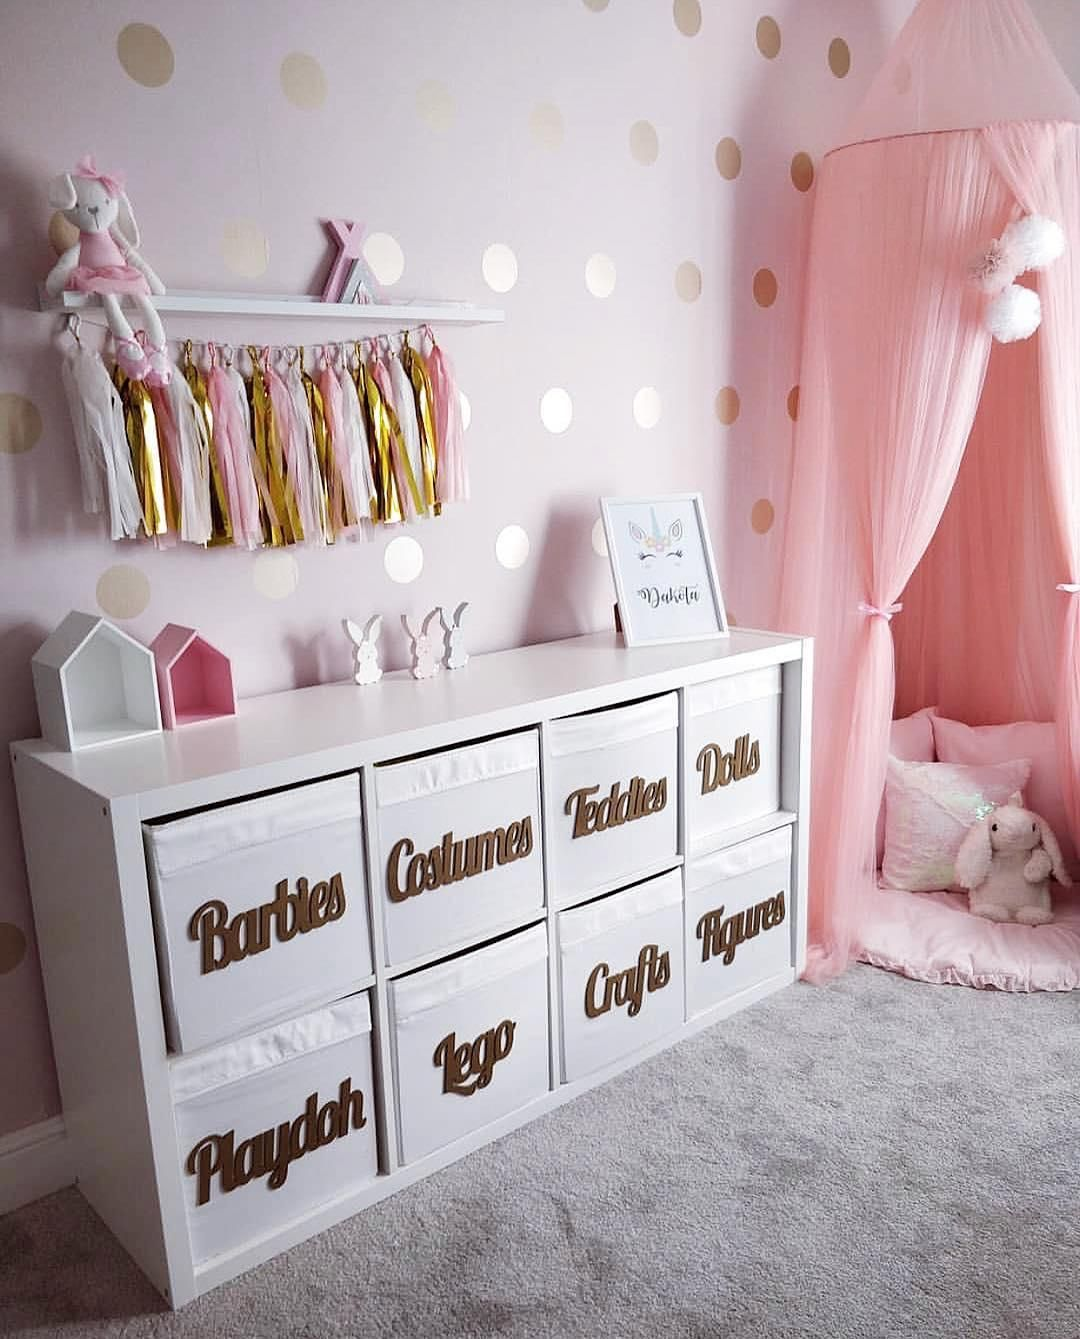 27 Beautiful Kids Room Ideas You Re Going To Love This Year